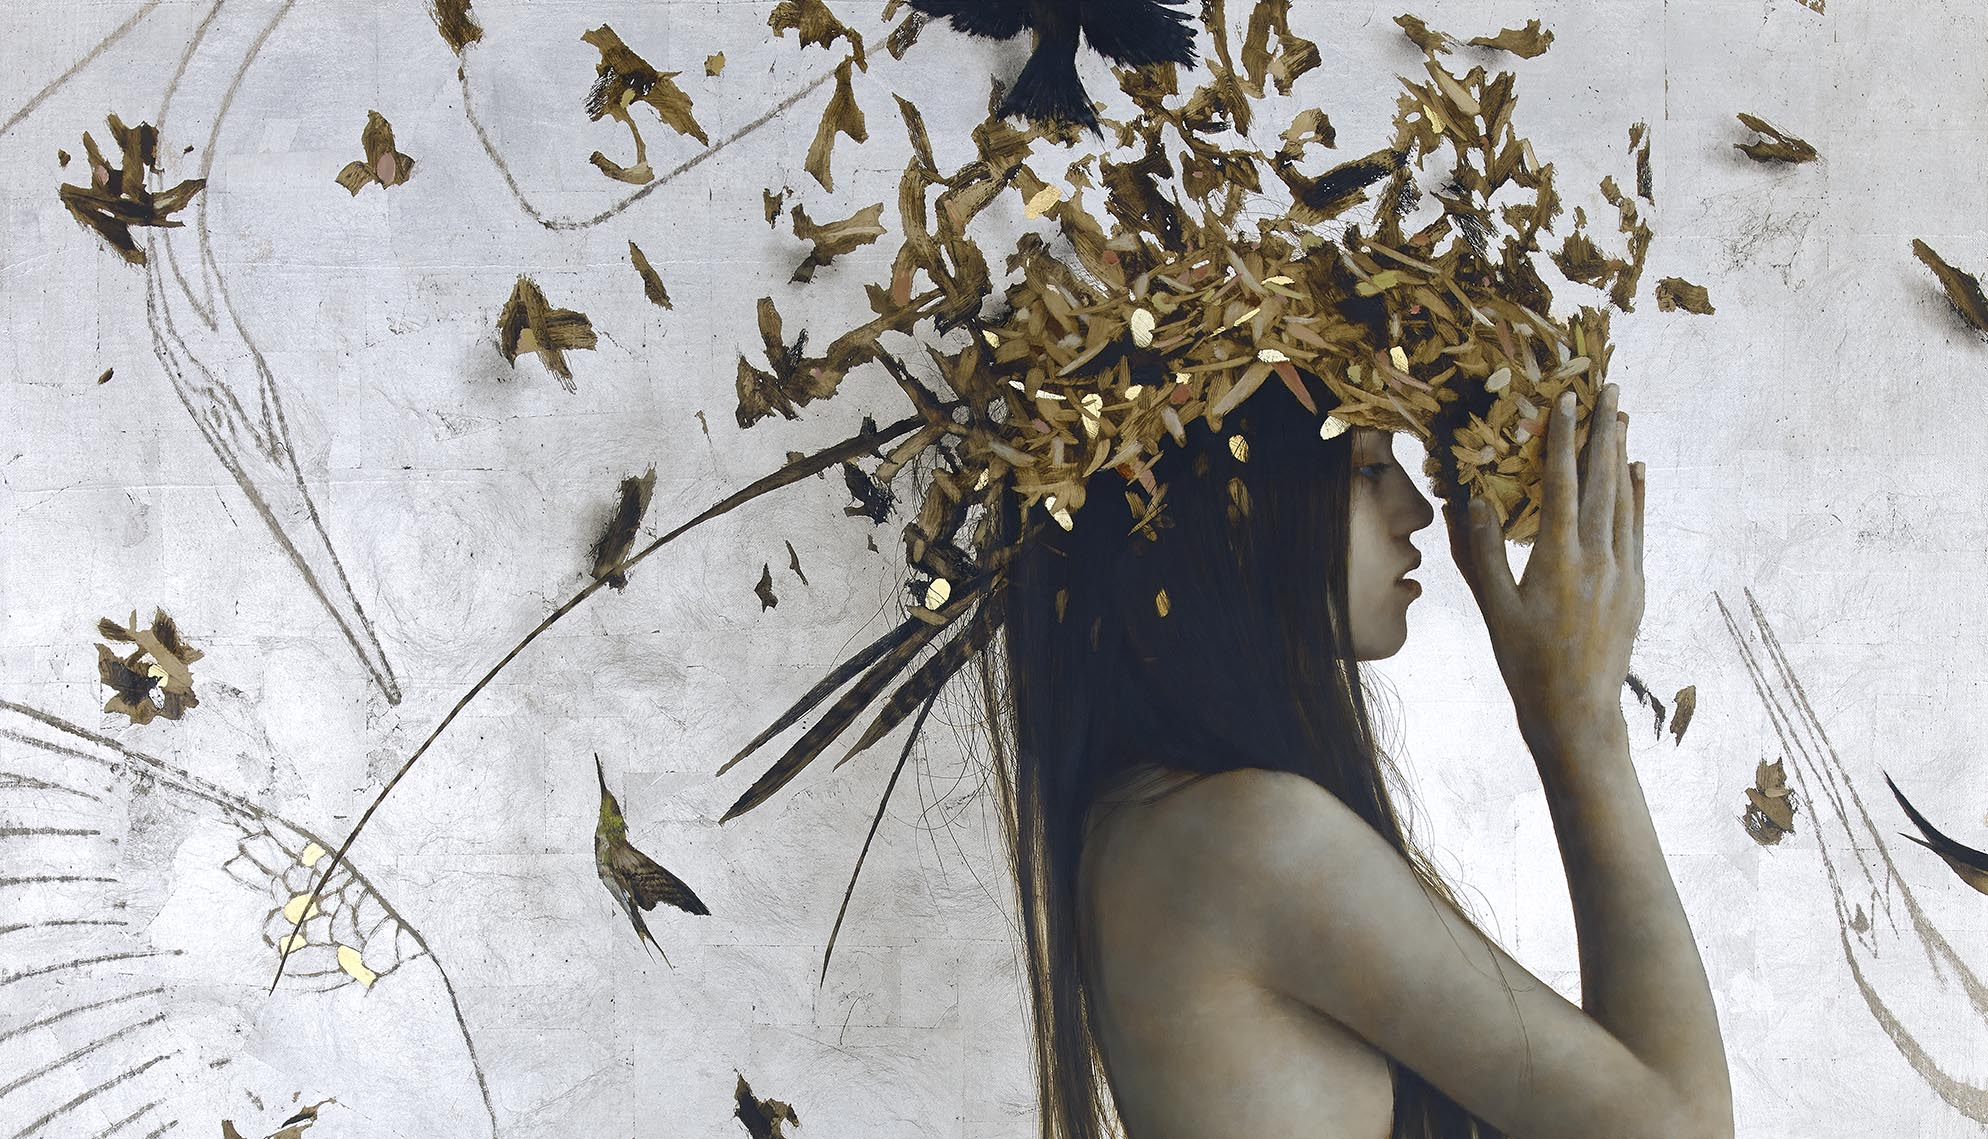 Brad Kunkle figurative painting on the cover of beautiful bizarre art magazine issue 27